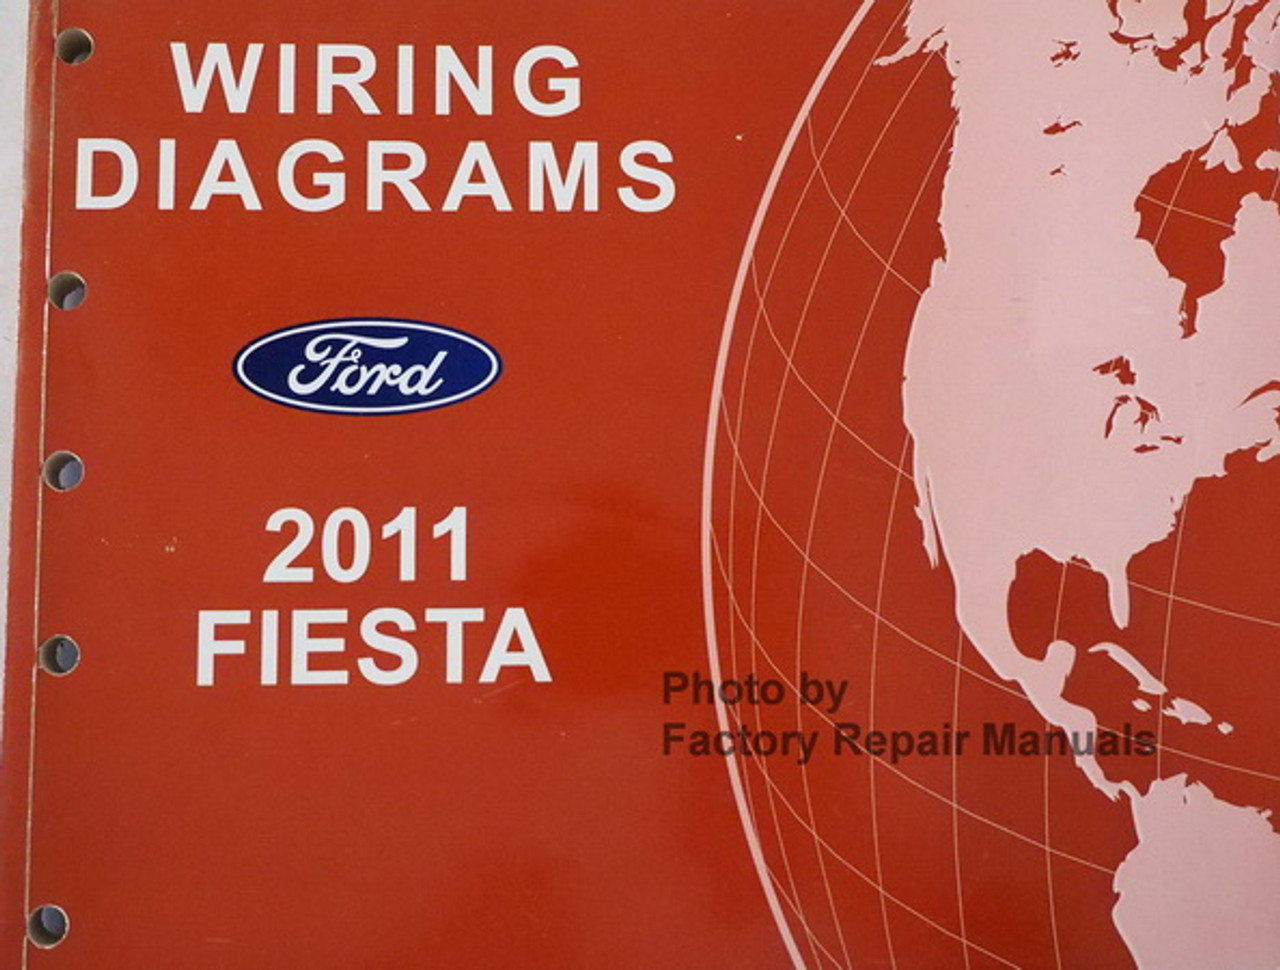 2011 Ford Fiesta Electrical Wiring Diagrams Original Factory Manual -  Factory Repair ManualsFactory Repair Manuals